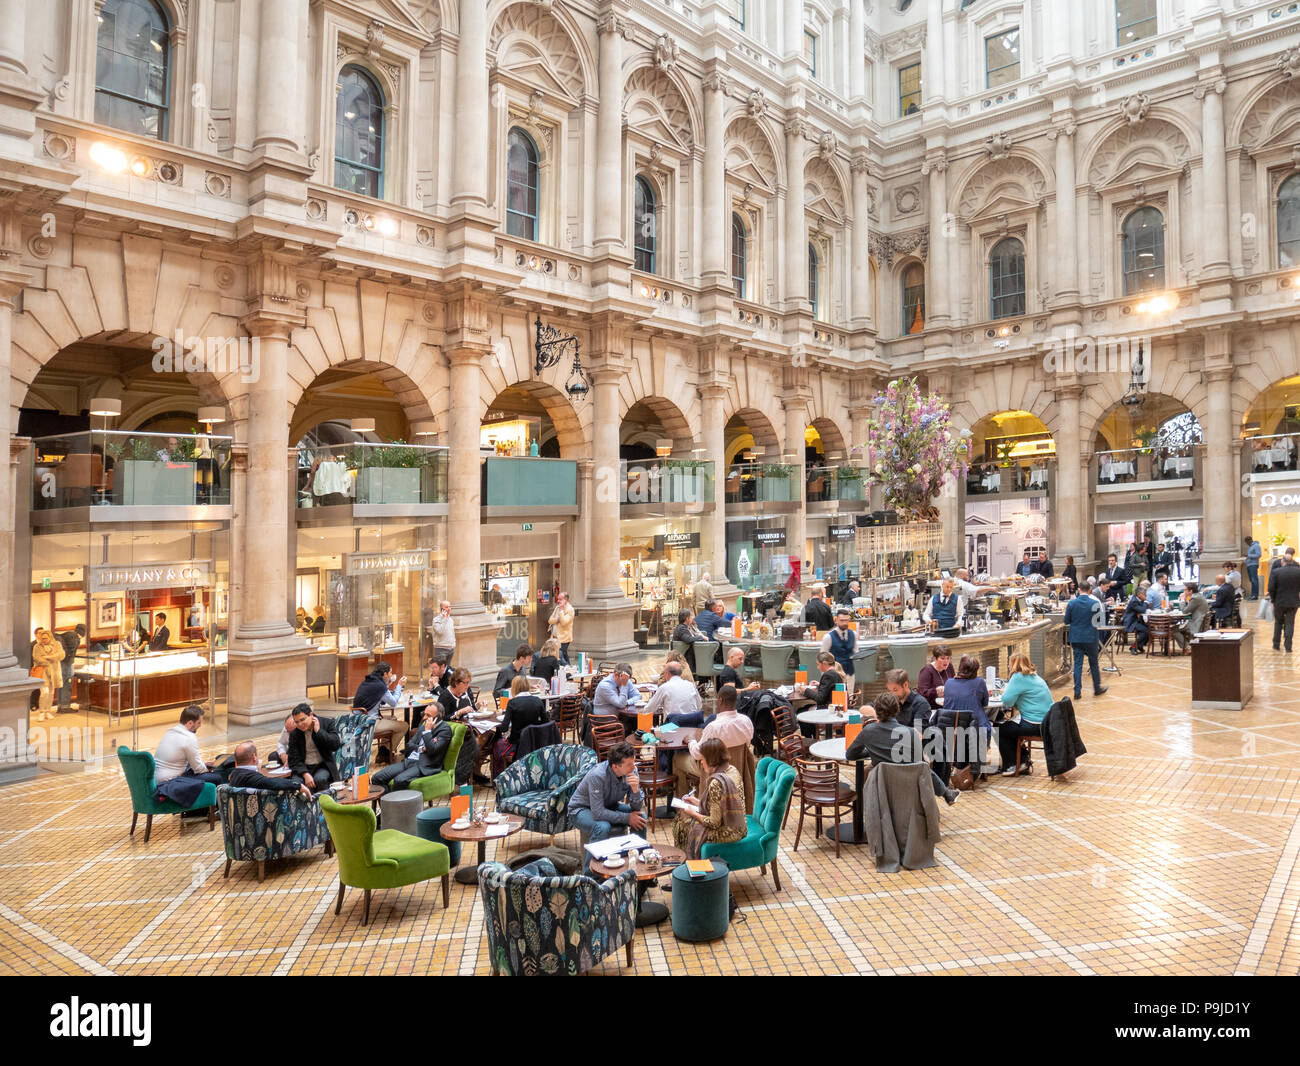 Shops, restaurants and bars in the Royal Exchange, City of London, UK - Stock Image